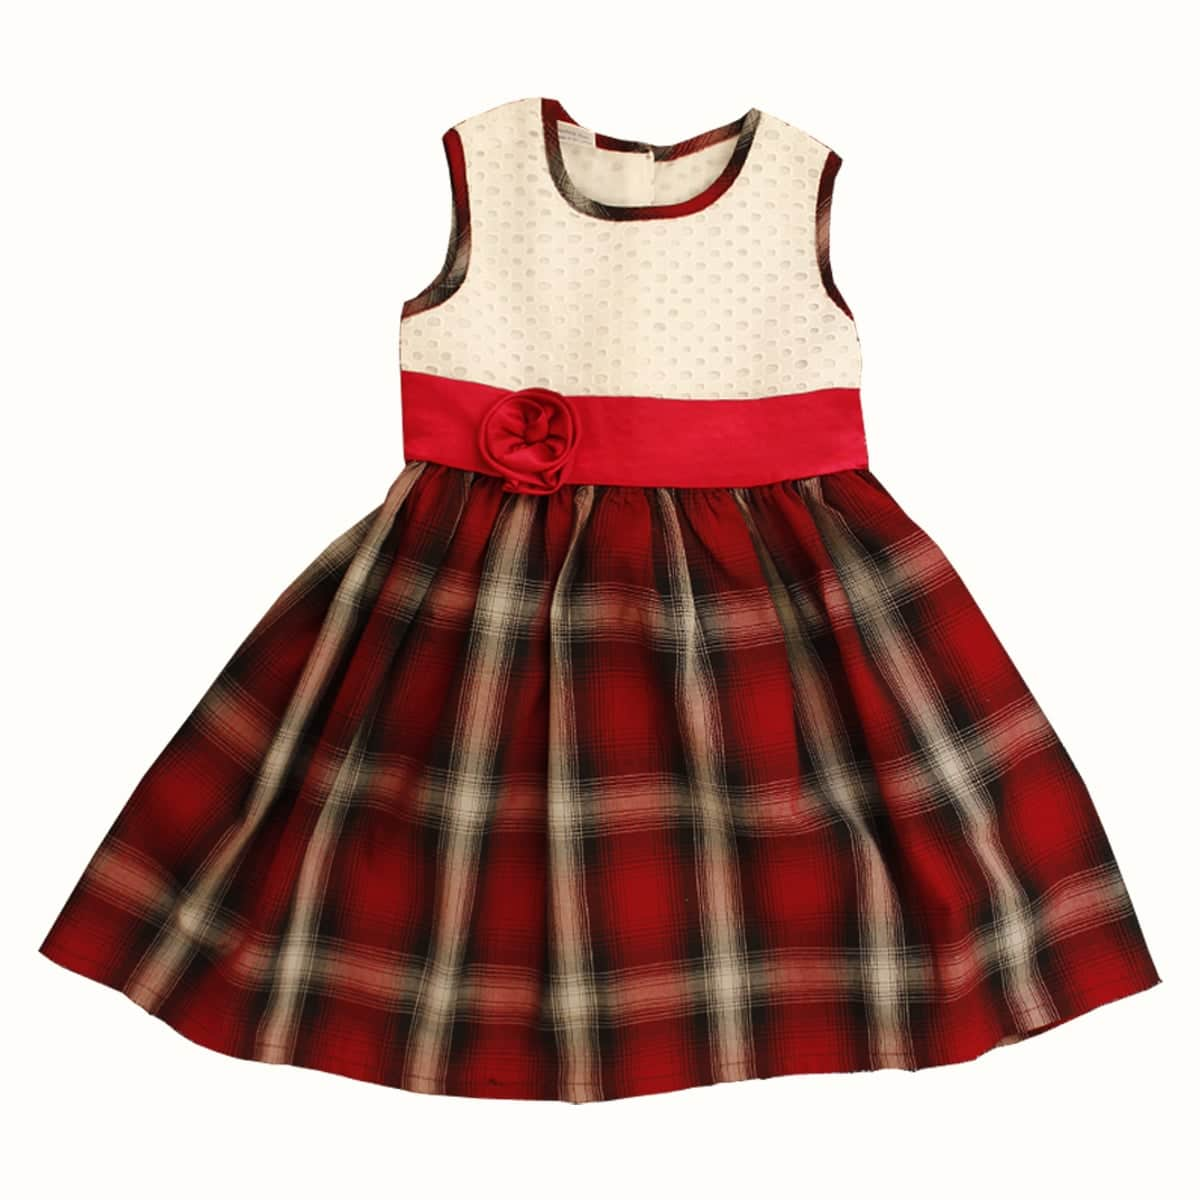 Smocked Dress with Red Satin Flower